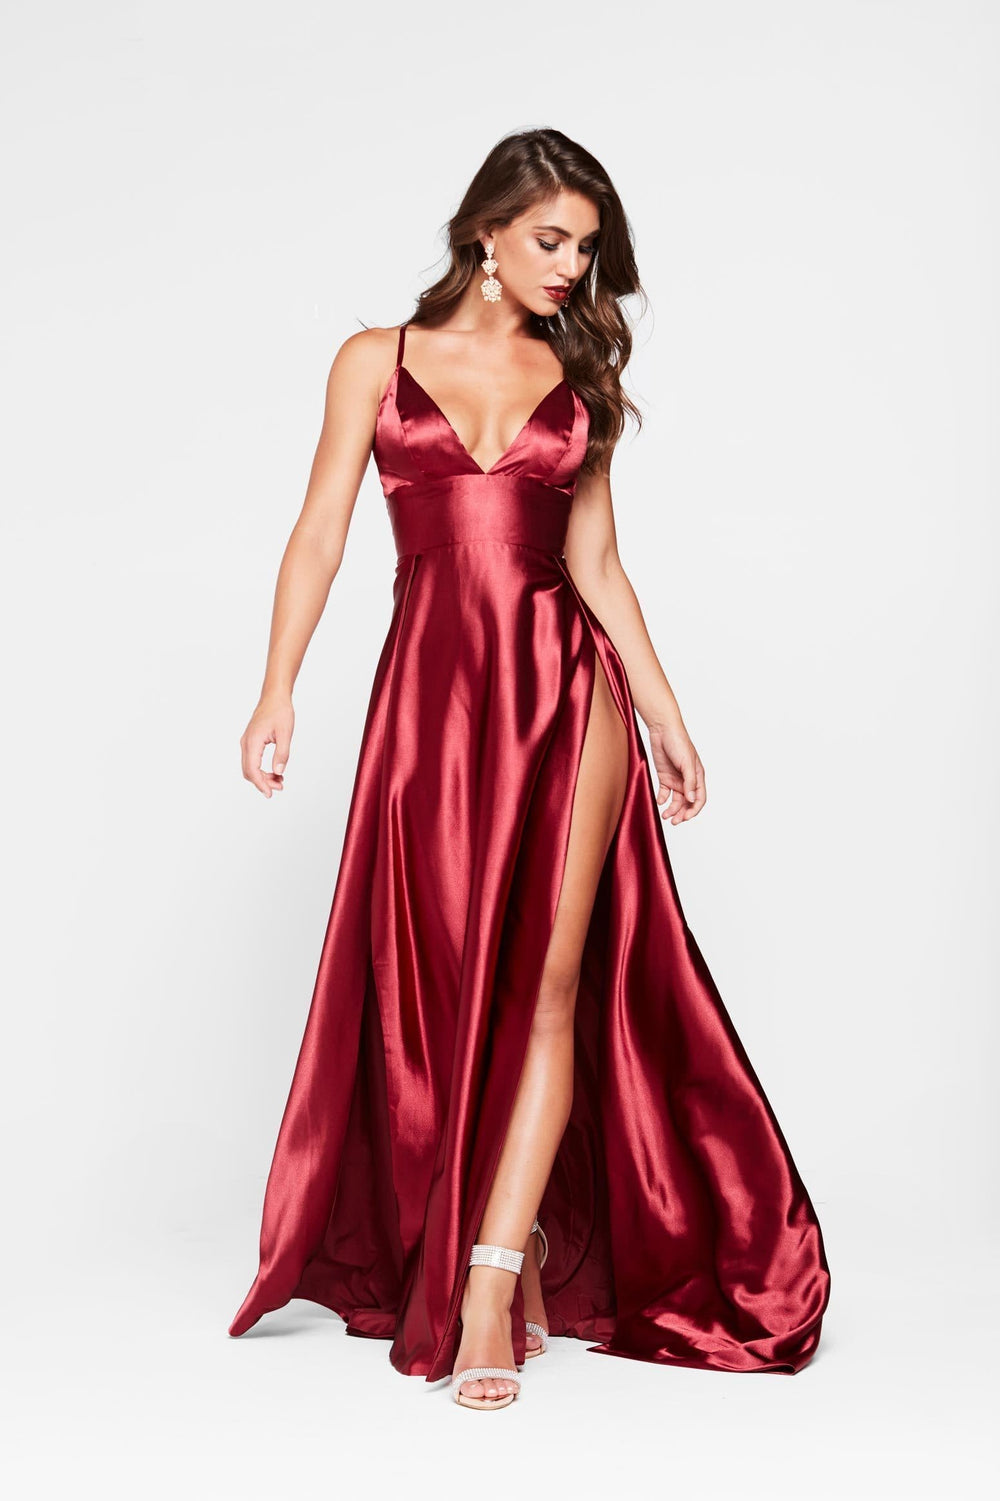 e466703d1d A N Tiffany - Deep Red Satin Gown with V Neck and Two Slits – A N ...